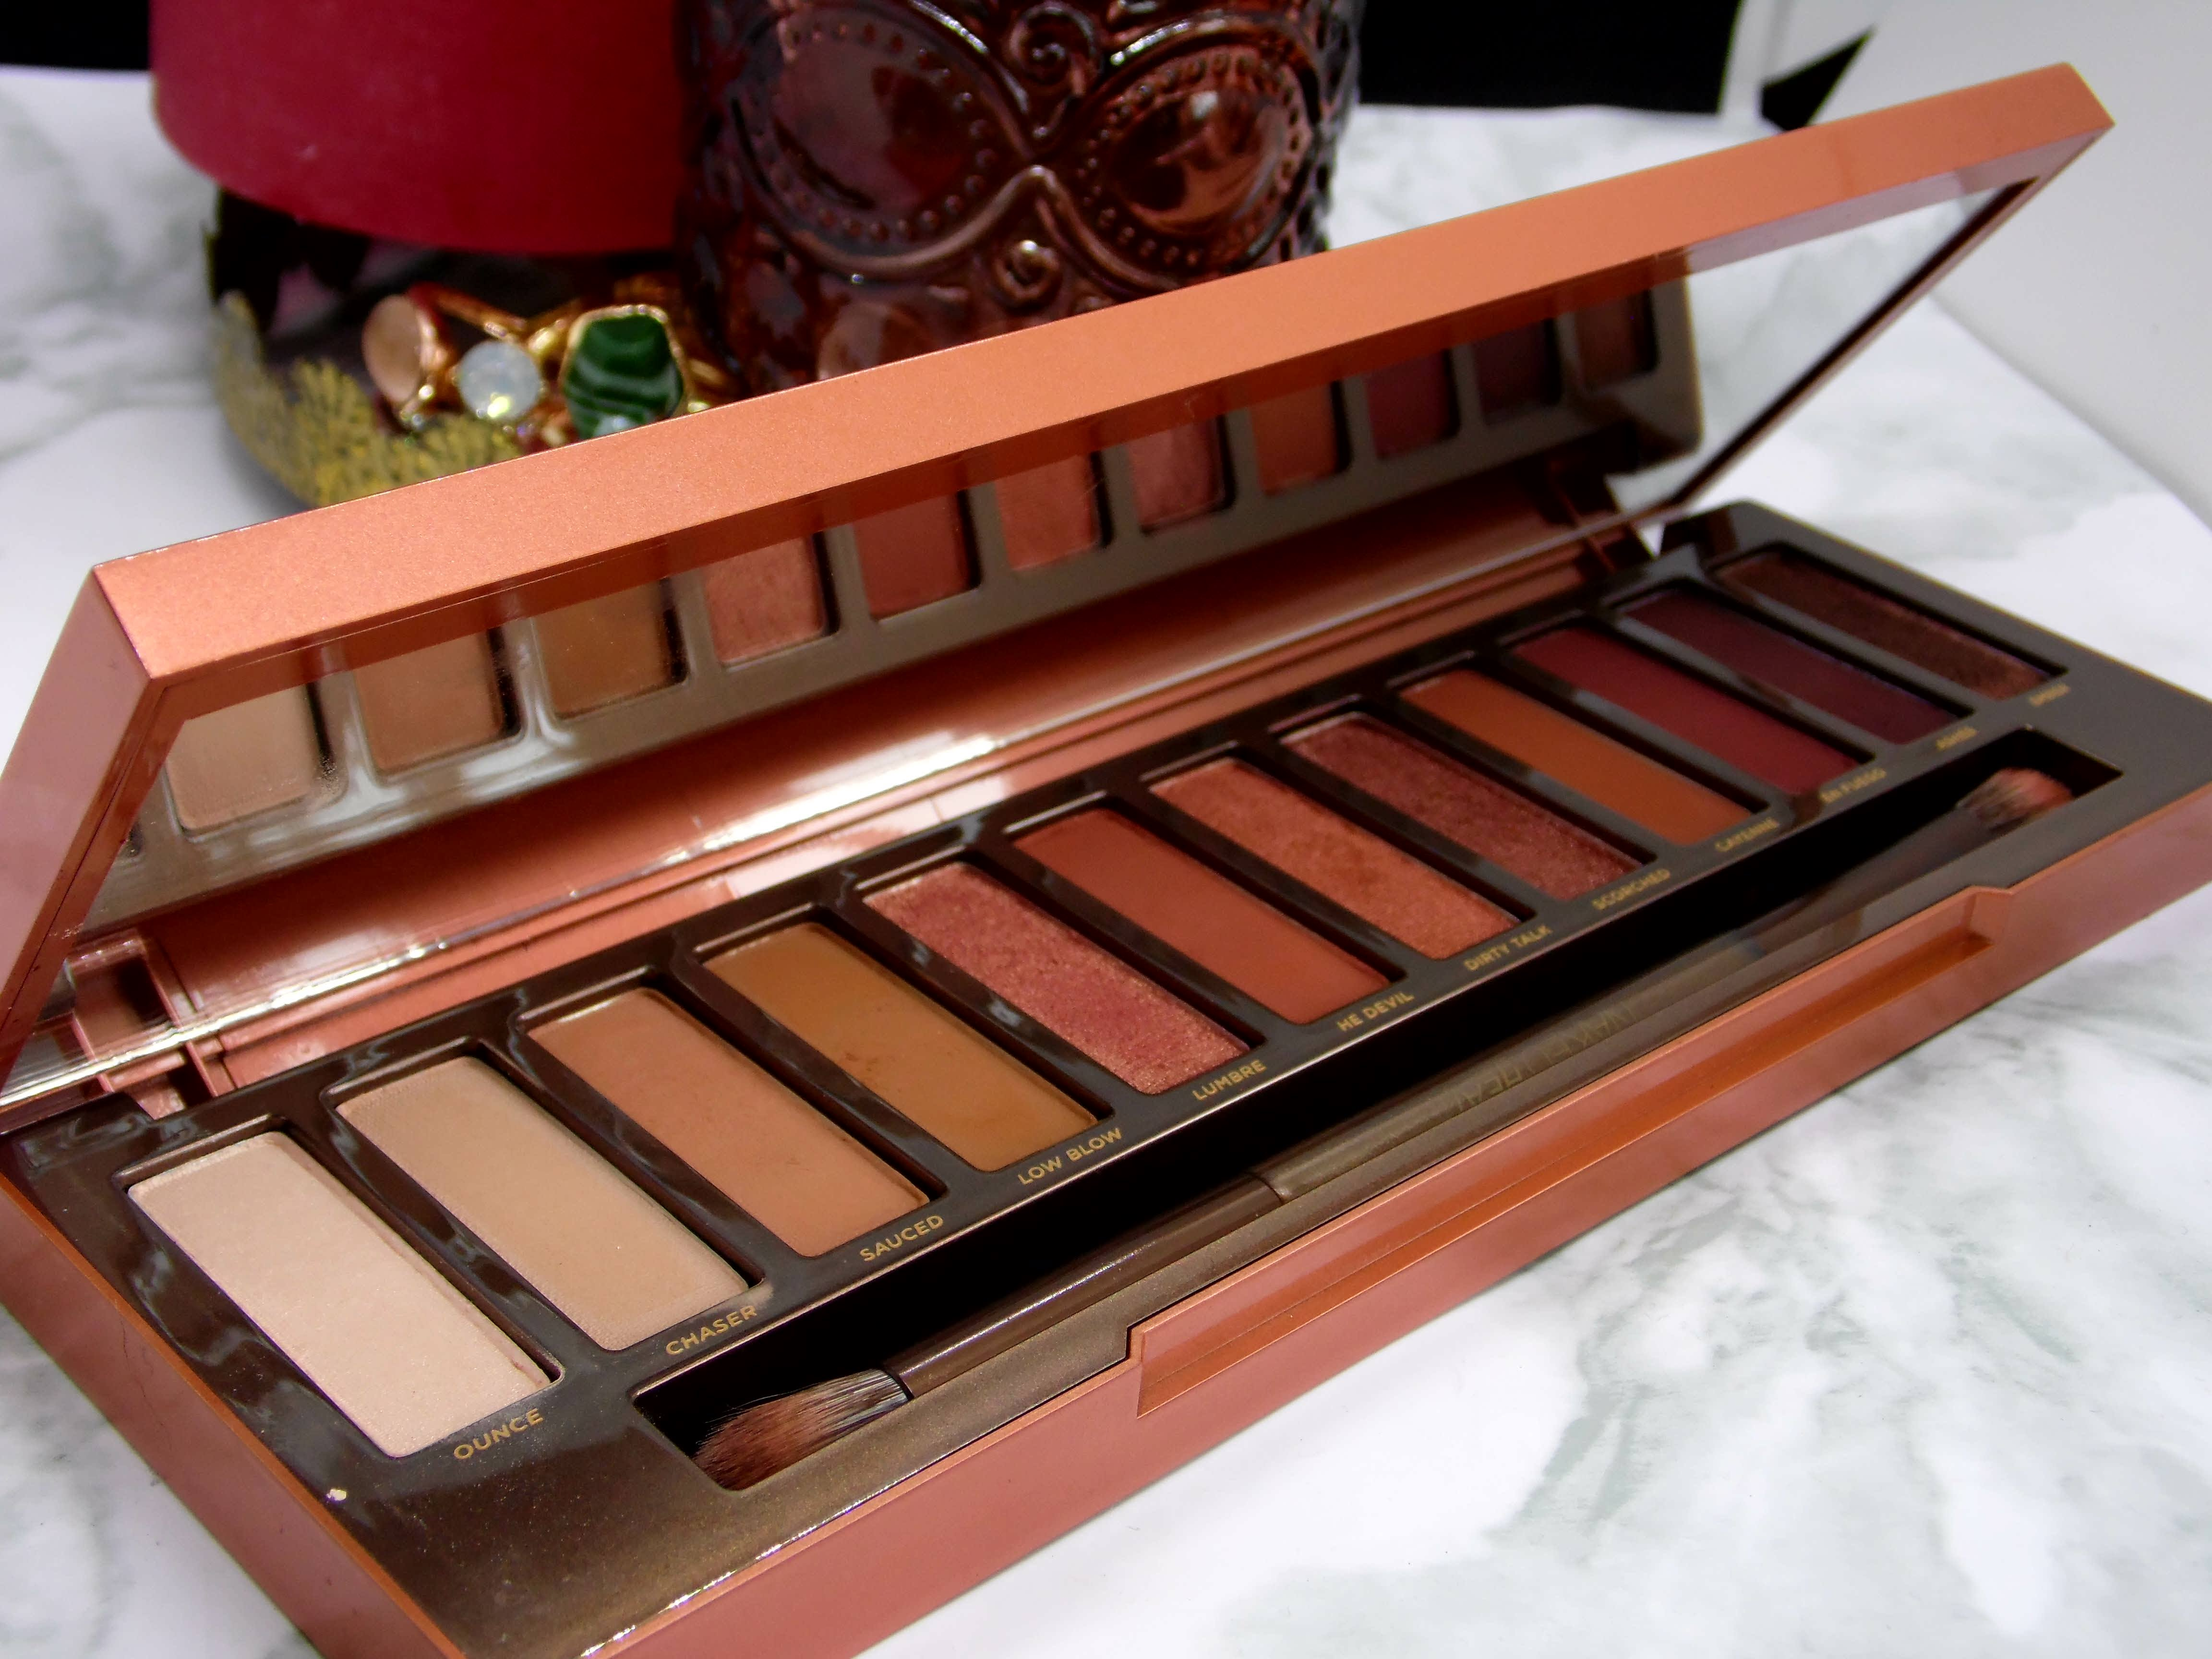 Urban Decay Naked Heat Palette - By Megan Kelly